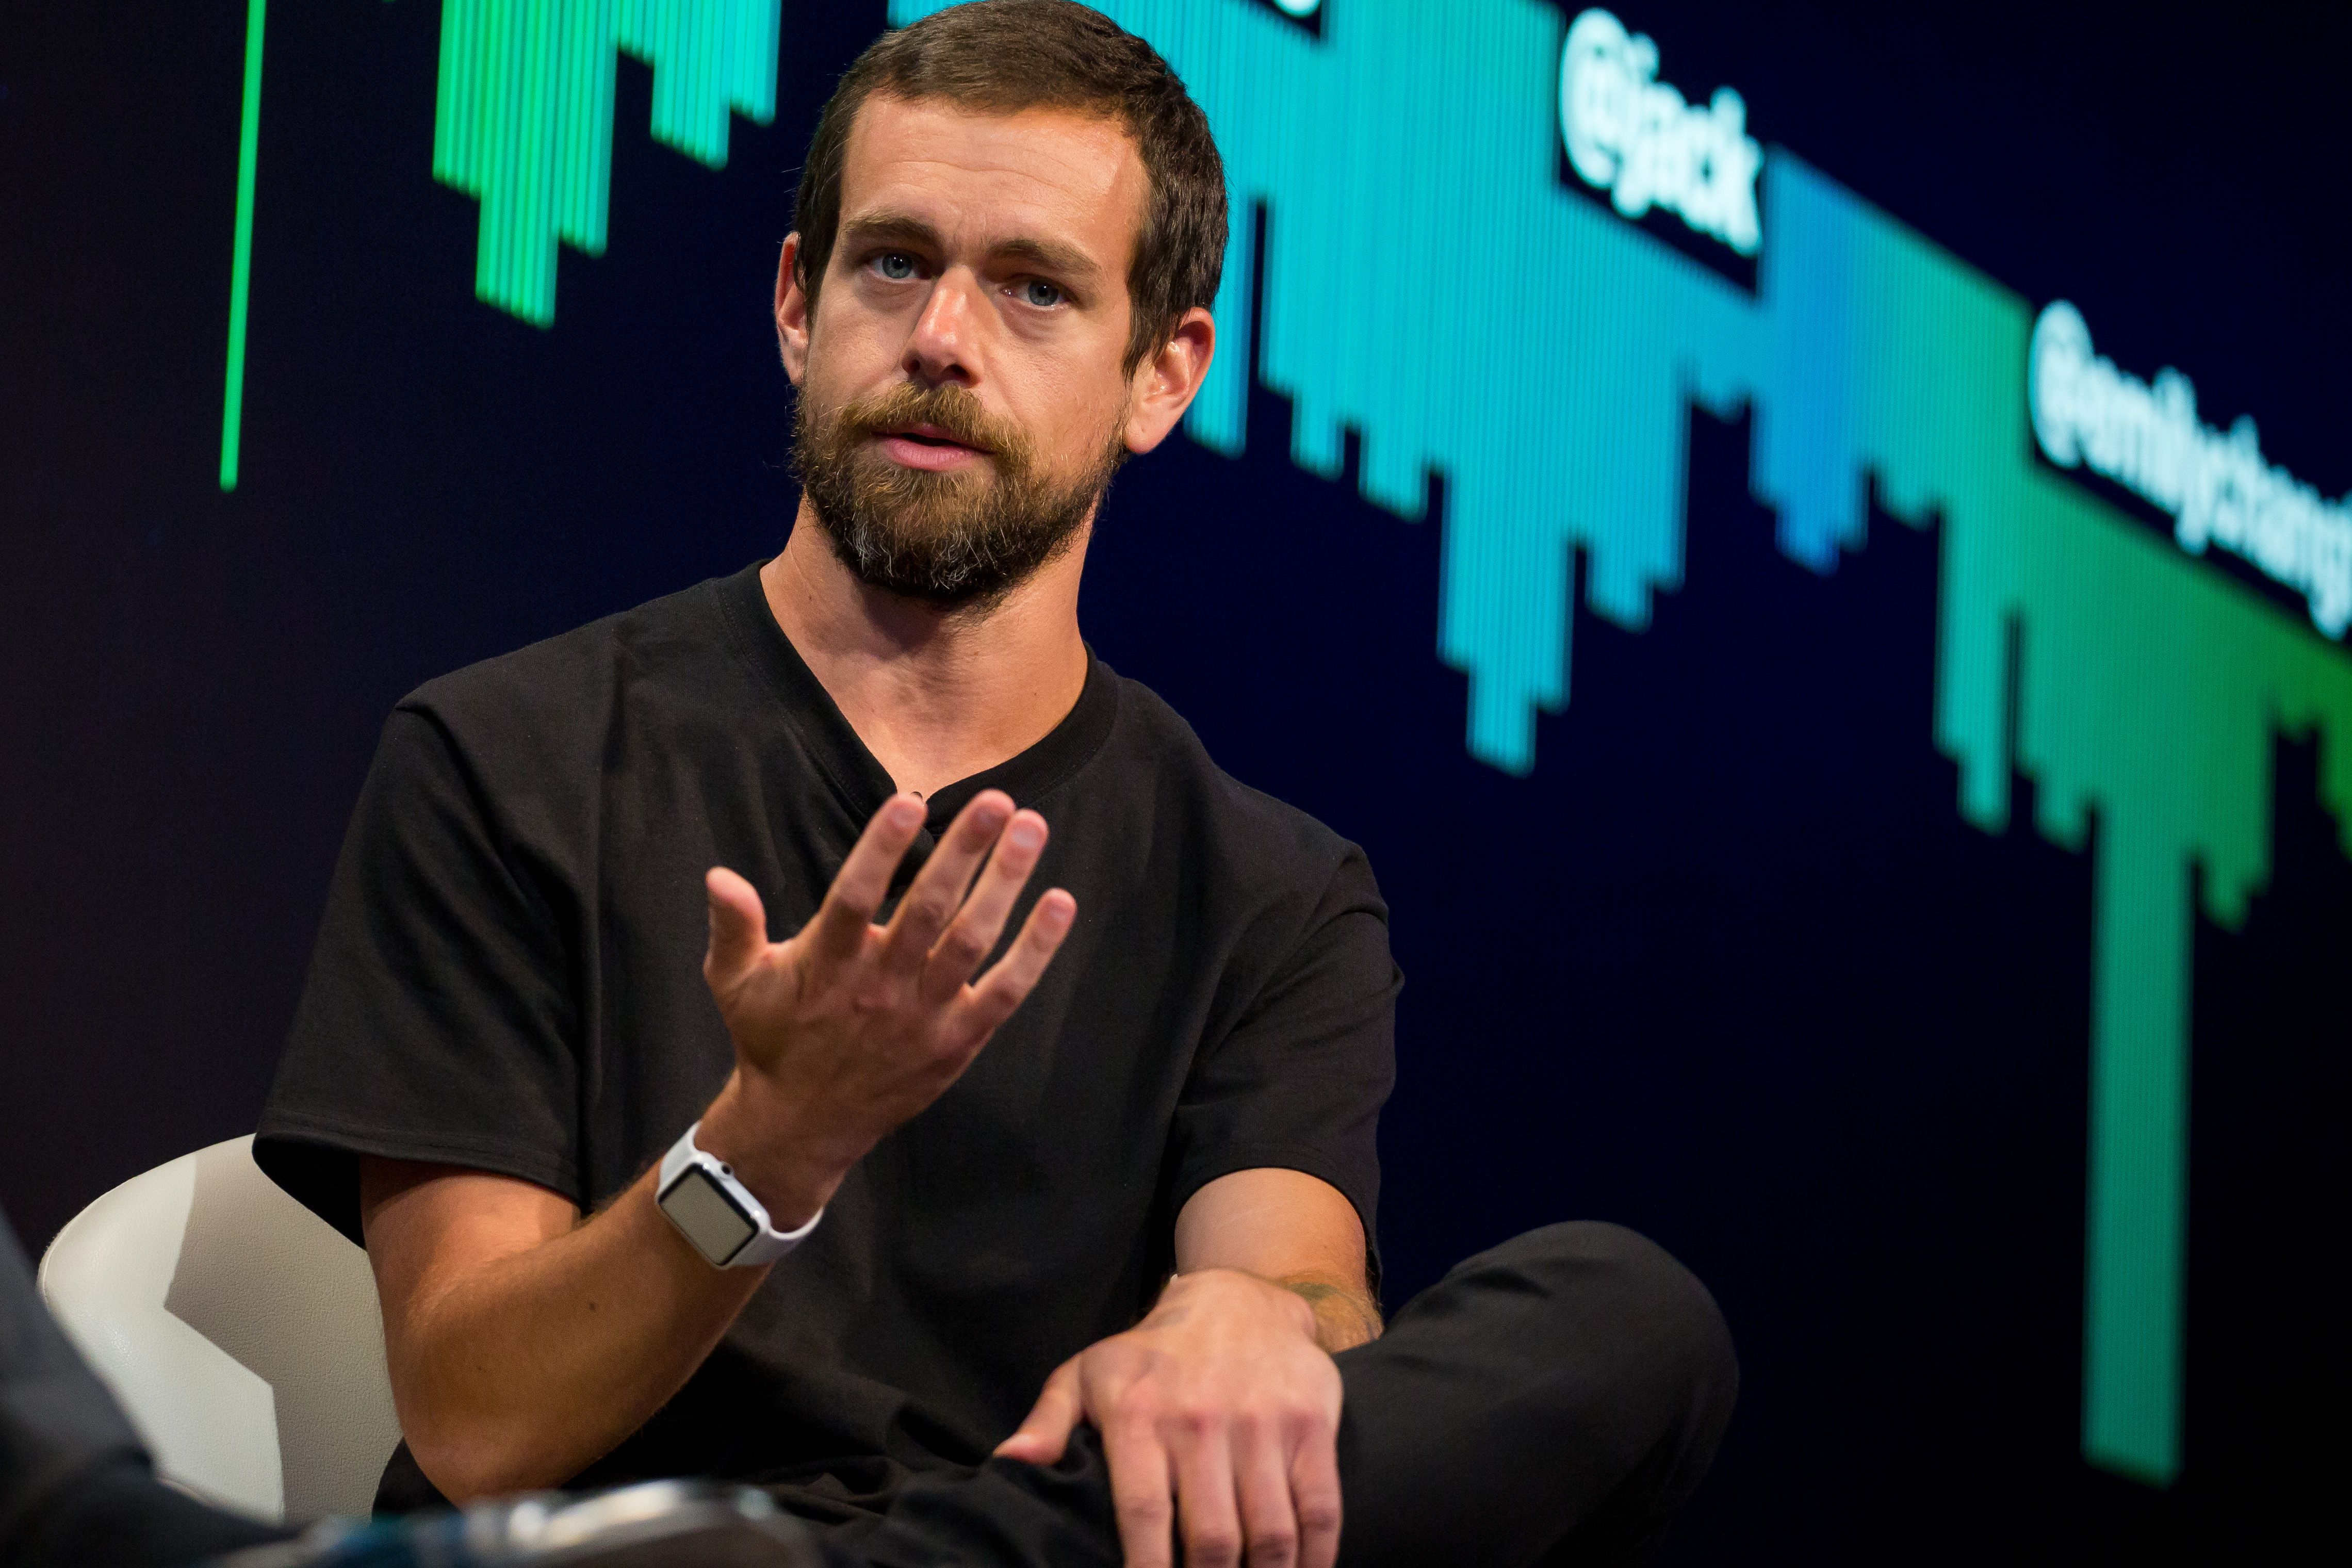 Square slated to report second-quarter earnings after the bell